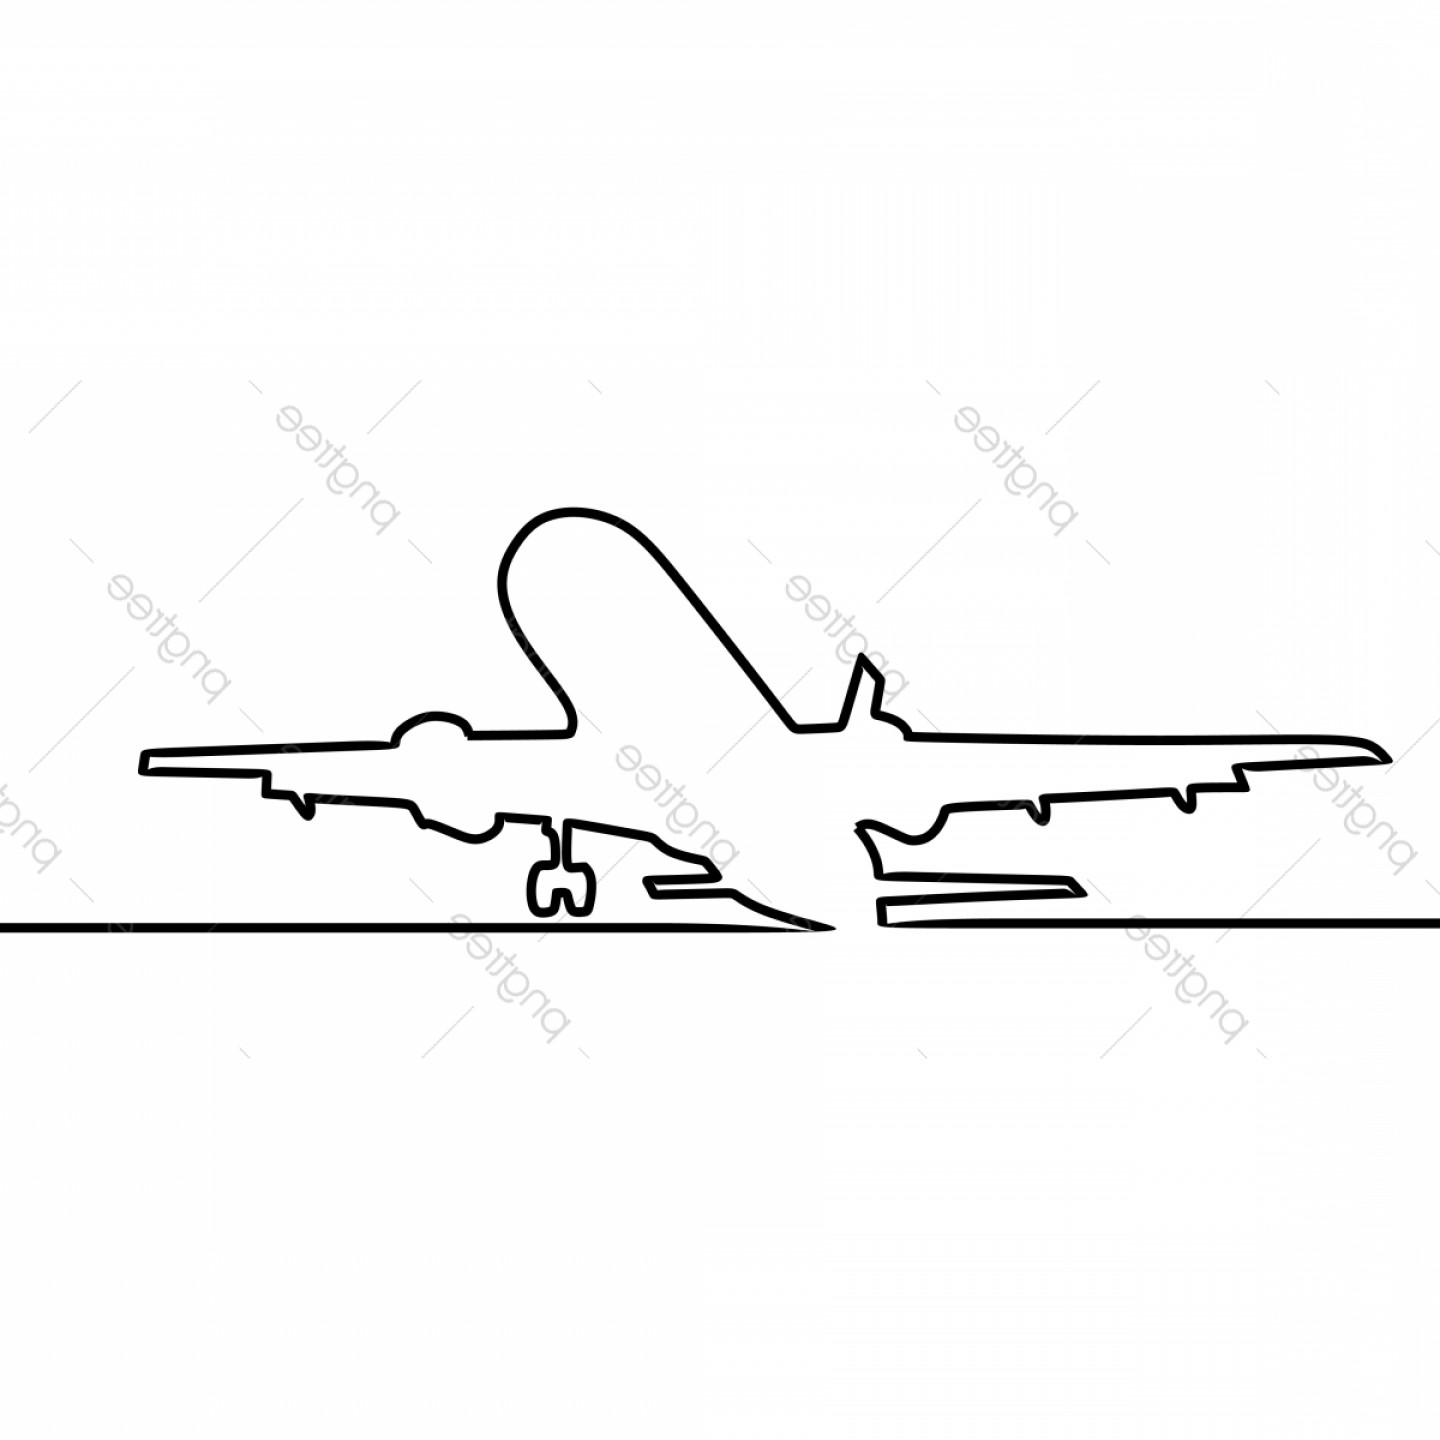 Vector Airplane Problem: Airplane One Line Art Drawing Vector Illustration